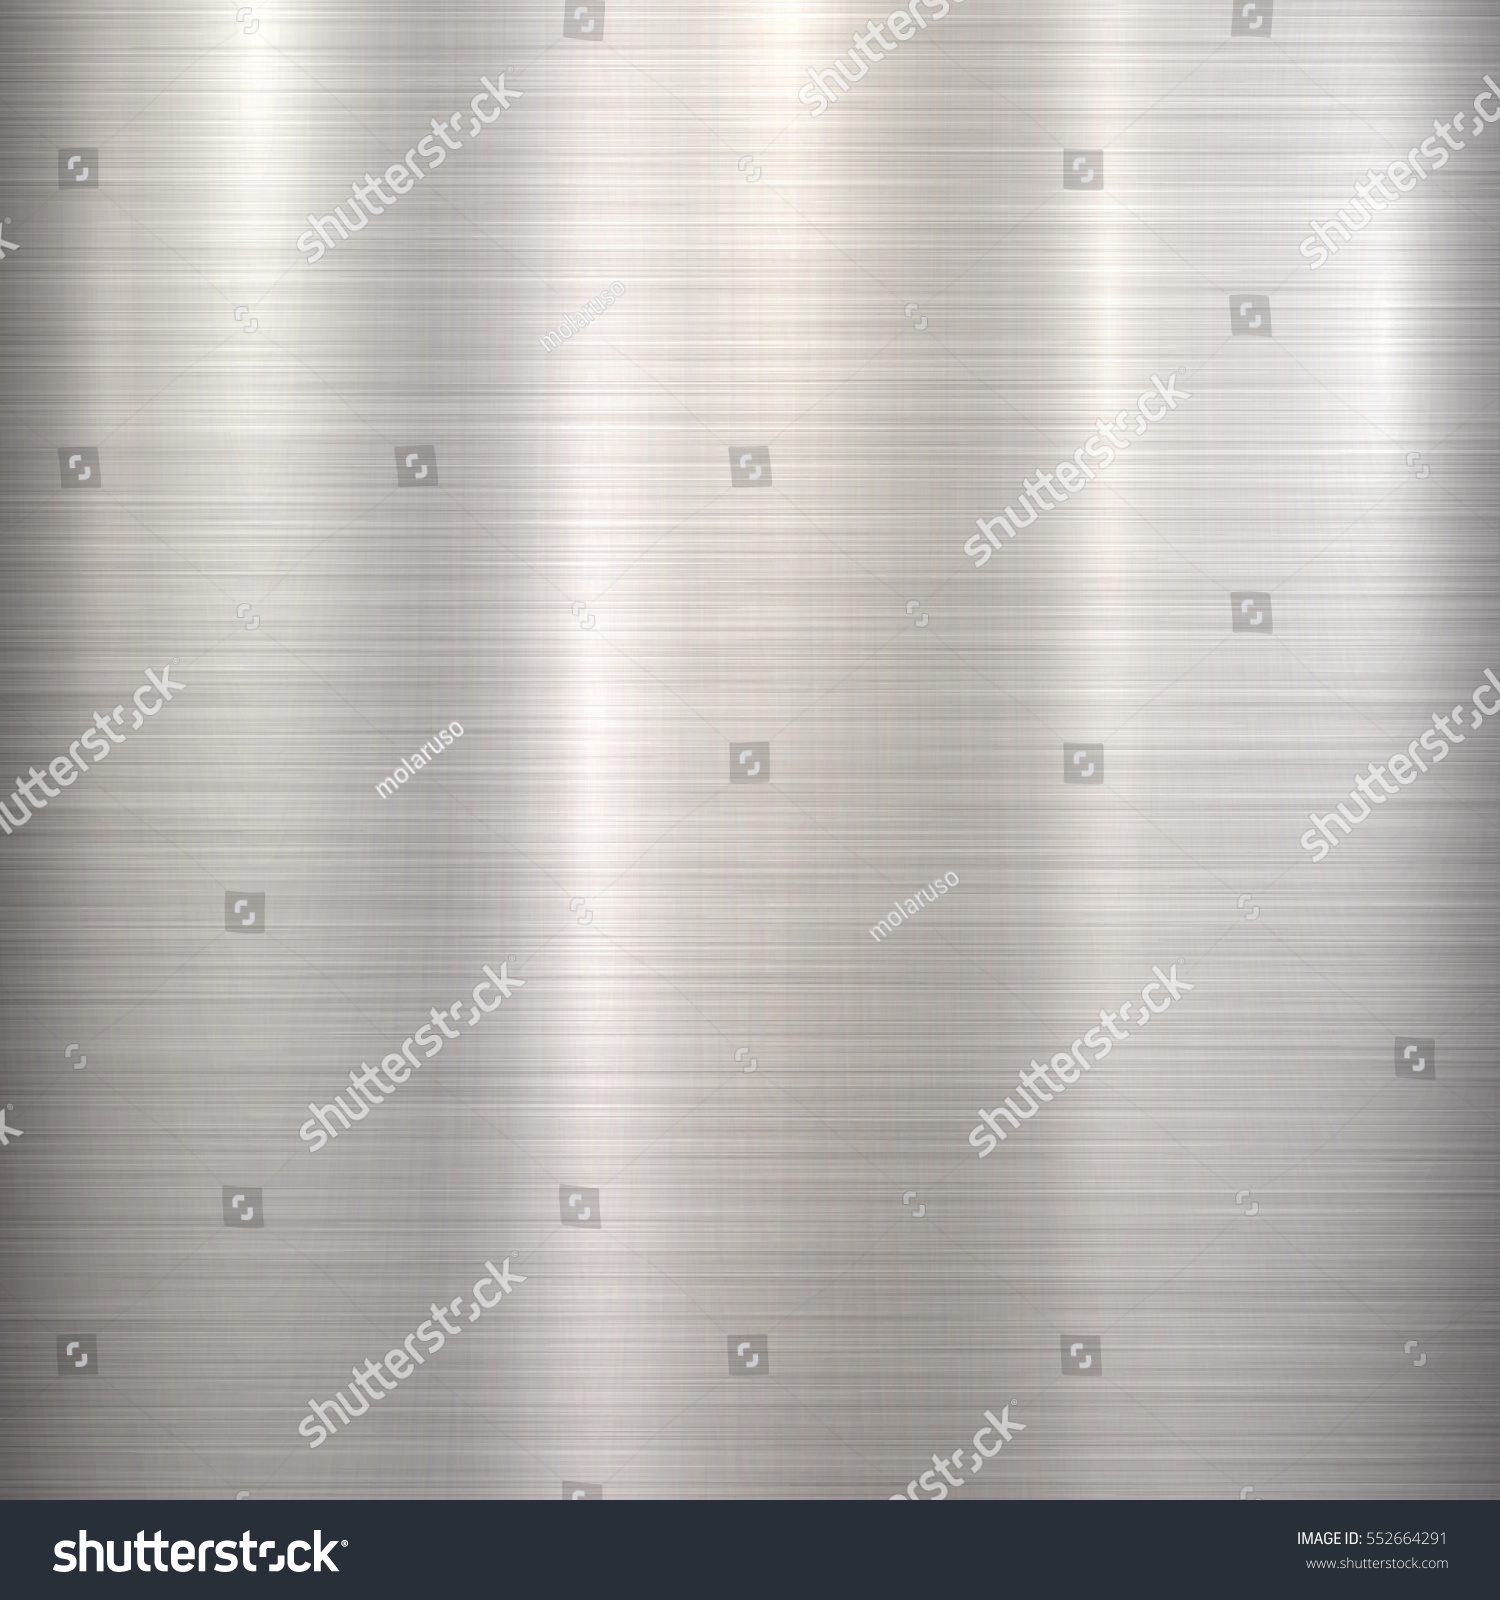 Metal Abstract Technology Background With Polished, Brushed Texture,  Chrome, Silver, Steel,